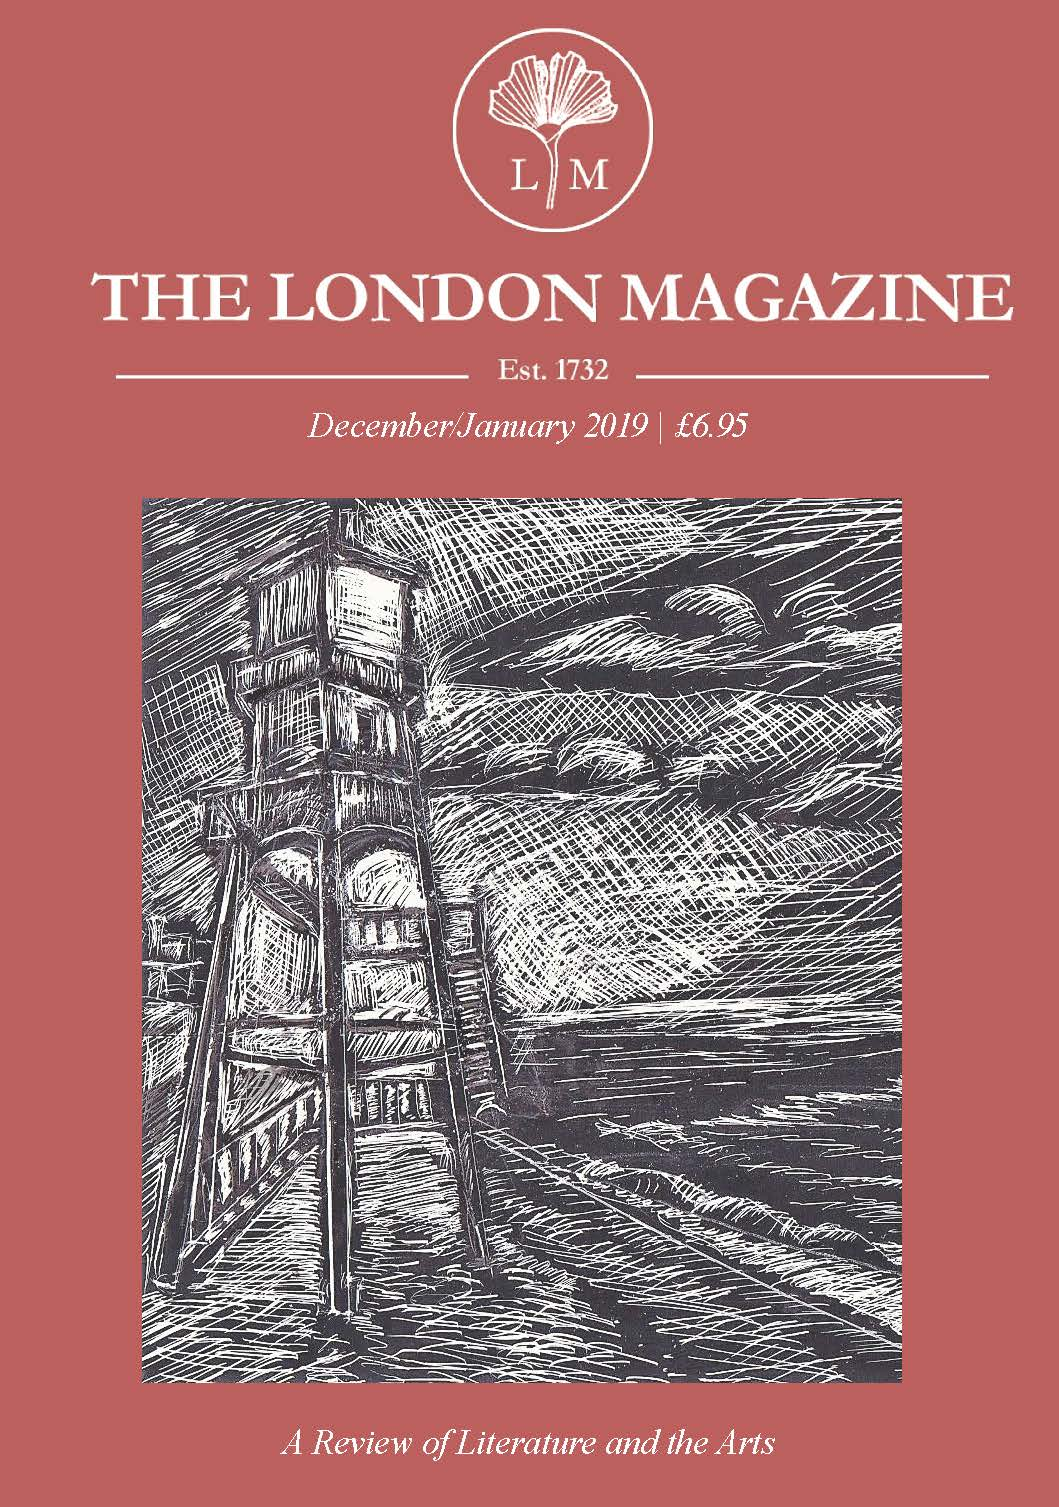 The London Magazine - December 2018/January 2019